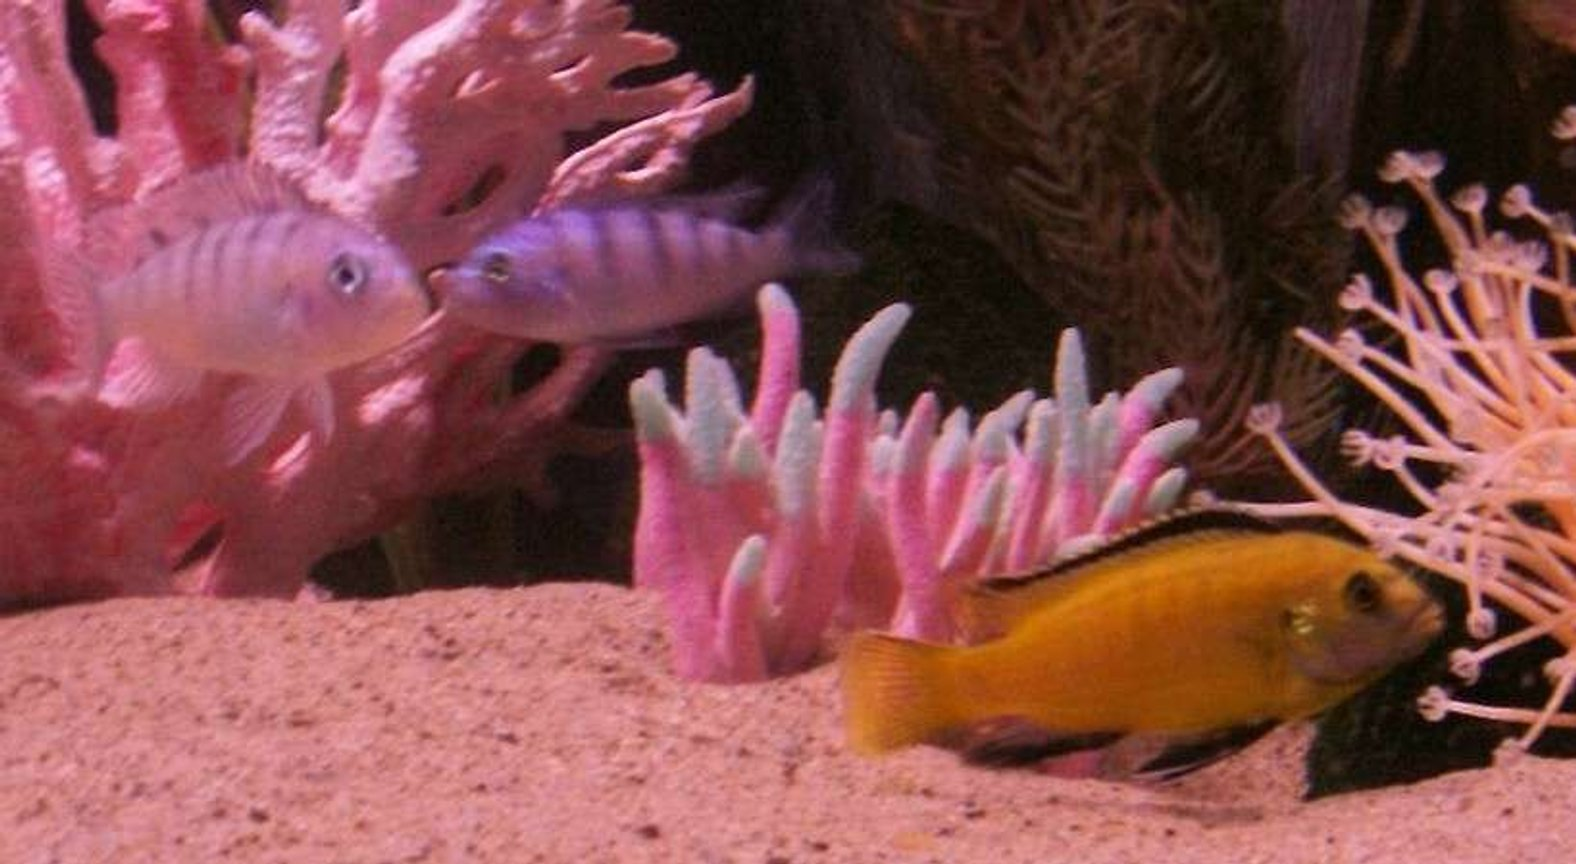 freshwater fish - labidochromis caeruleus - electric yellow cichlid stocking in 55 gallons tank - best friends!